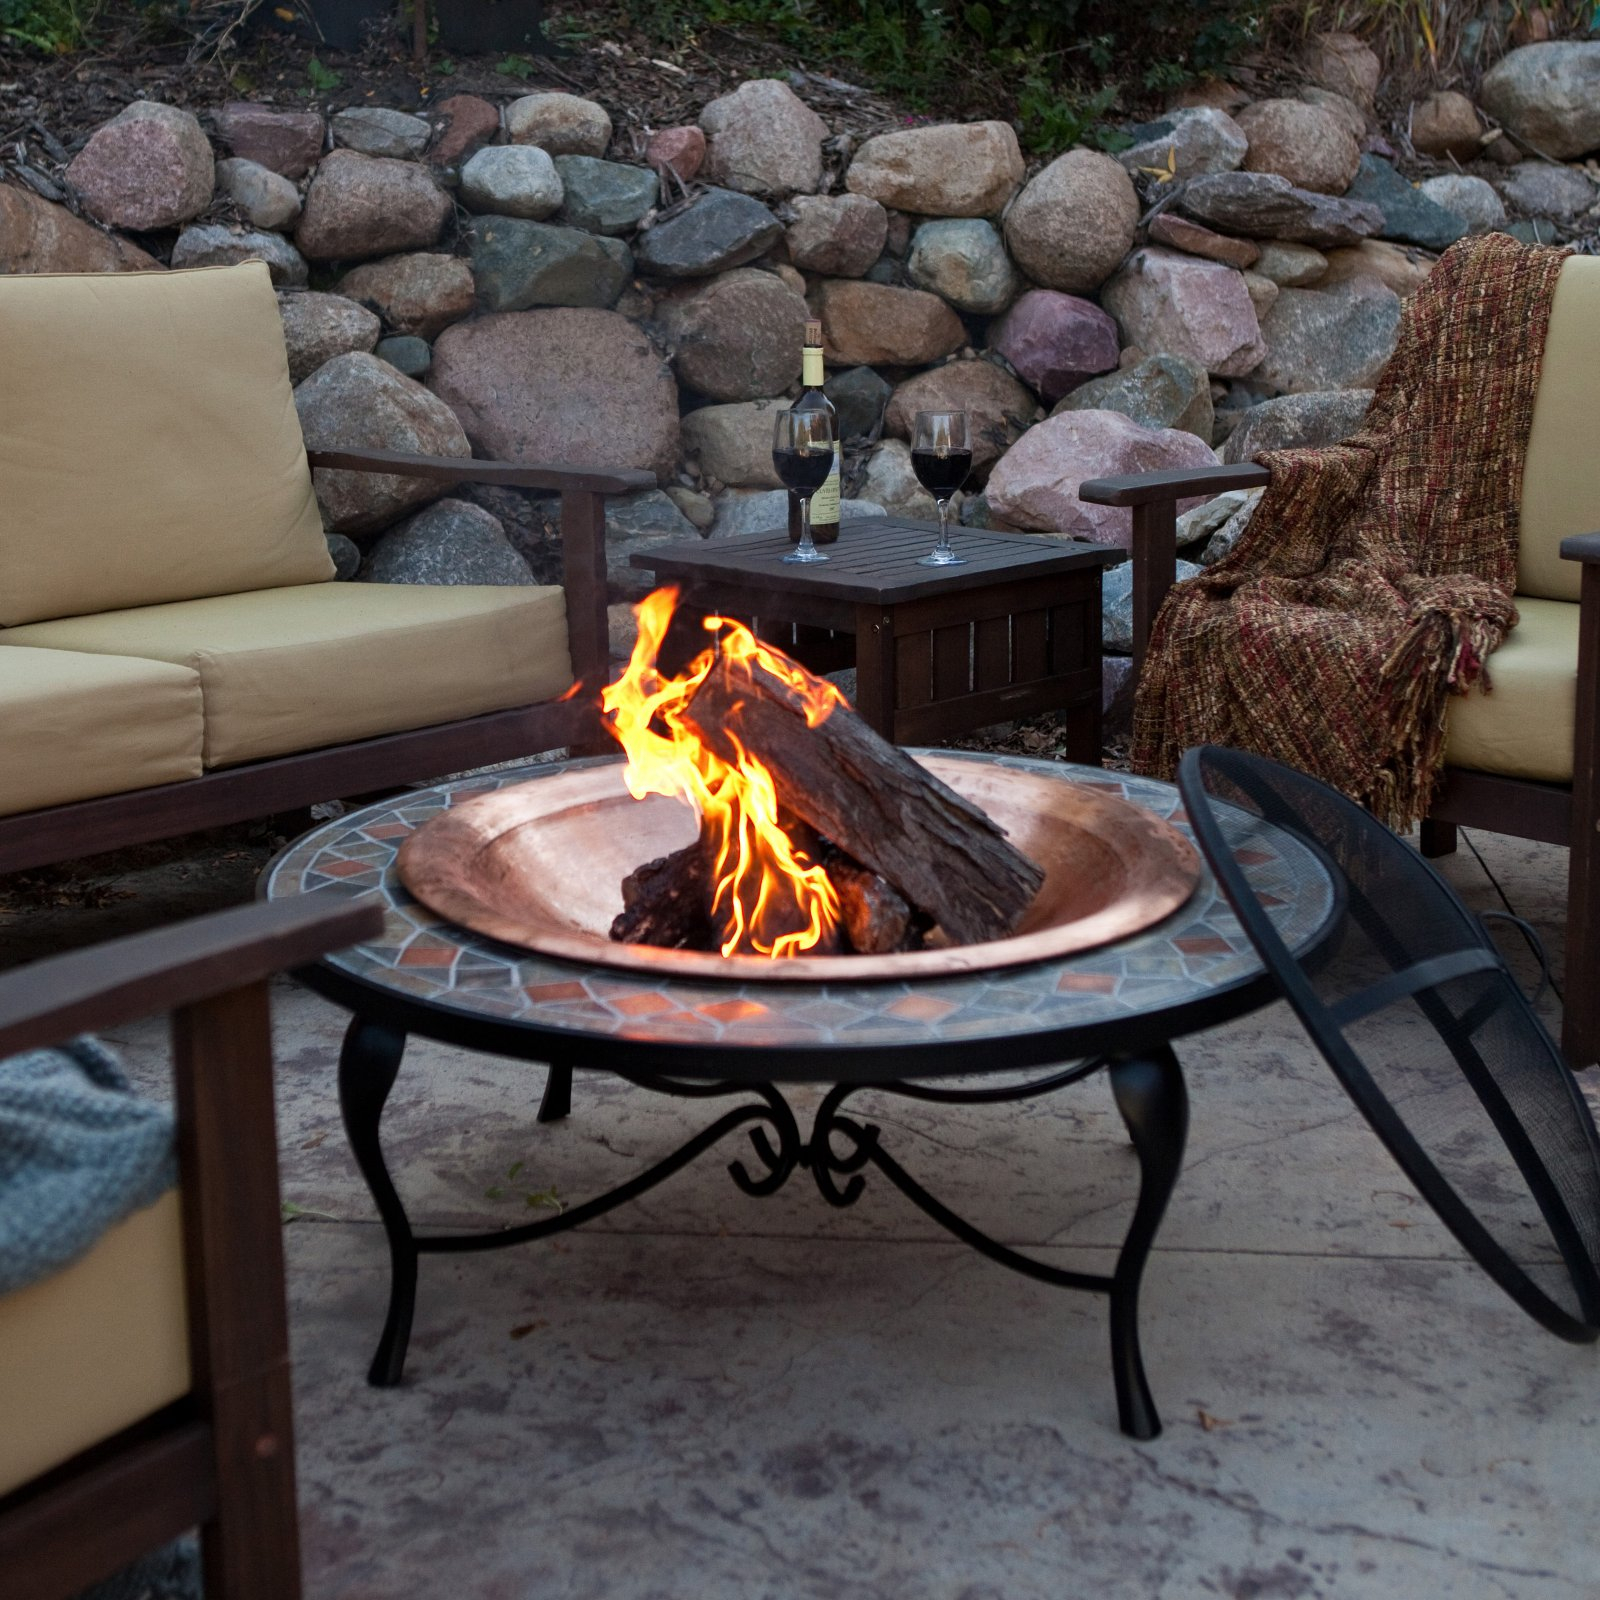 Outdoor Fire Pit Outdoor Fireplace Portable Fire Pit Diy Gas Fire inside proportions 1600 X 1600